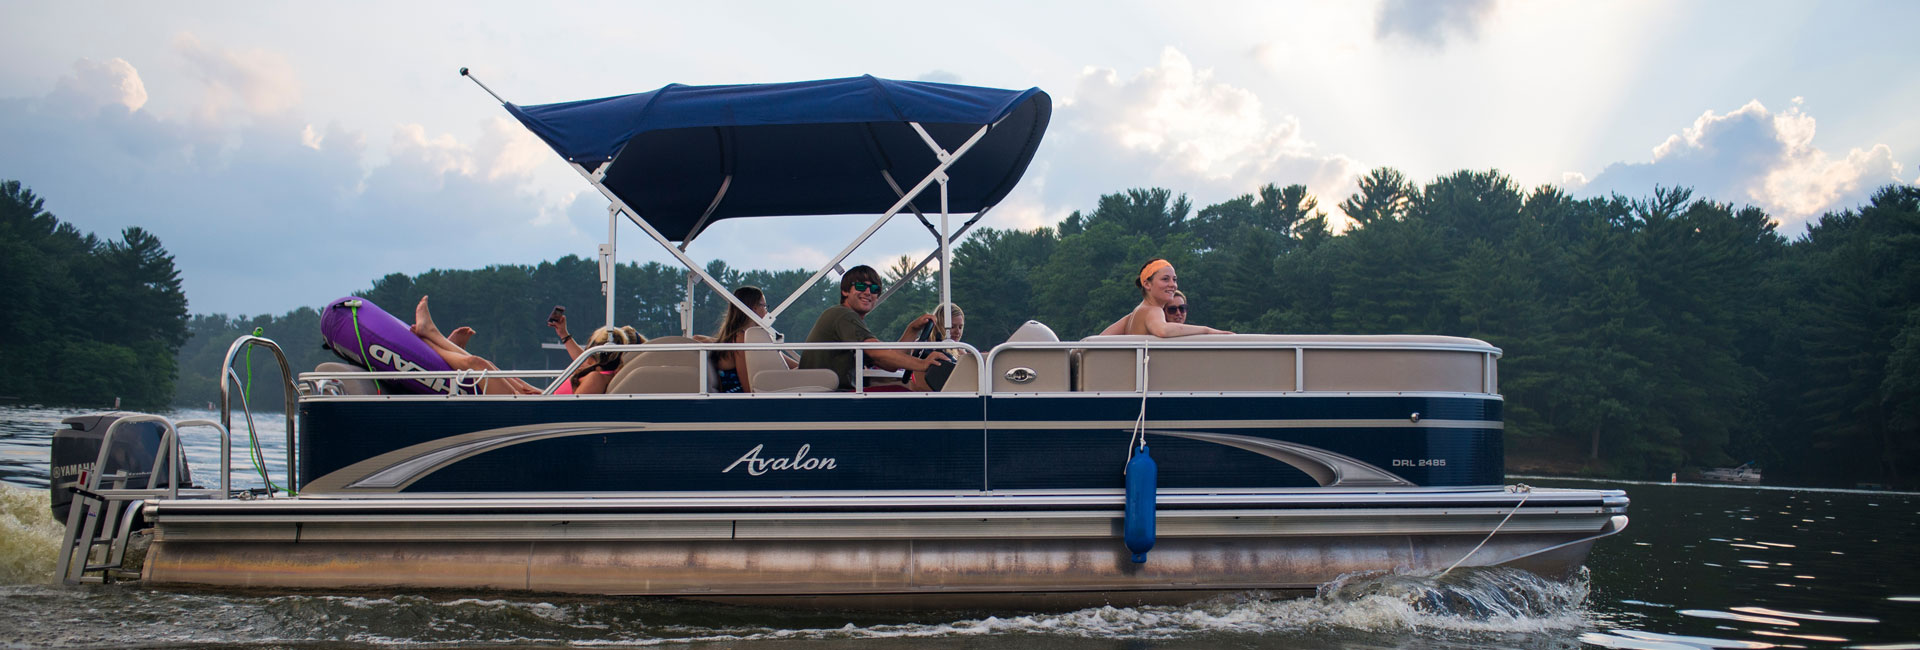 Wisconsin Dells Boat Rental and Marina - Dells Watersports